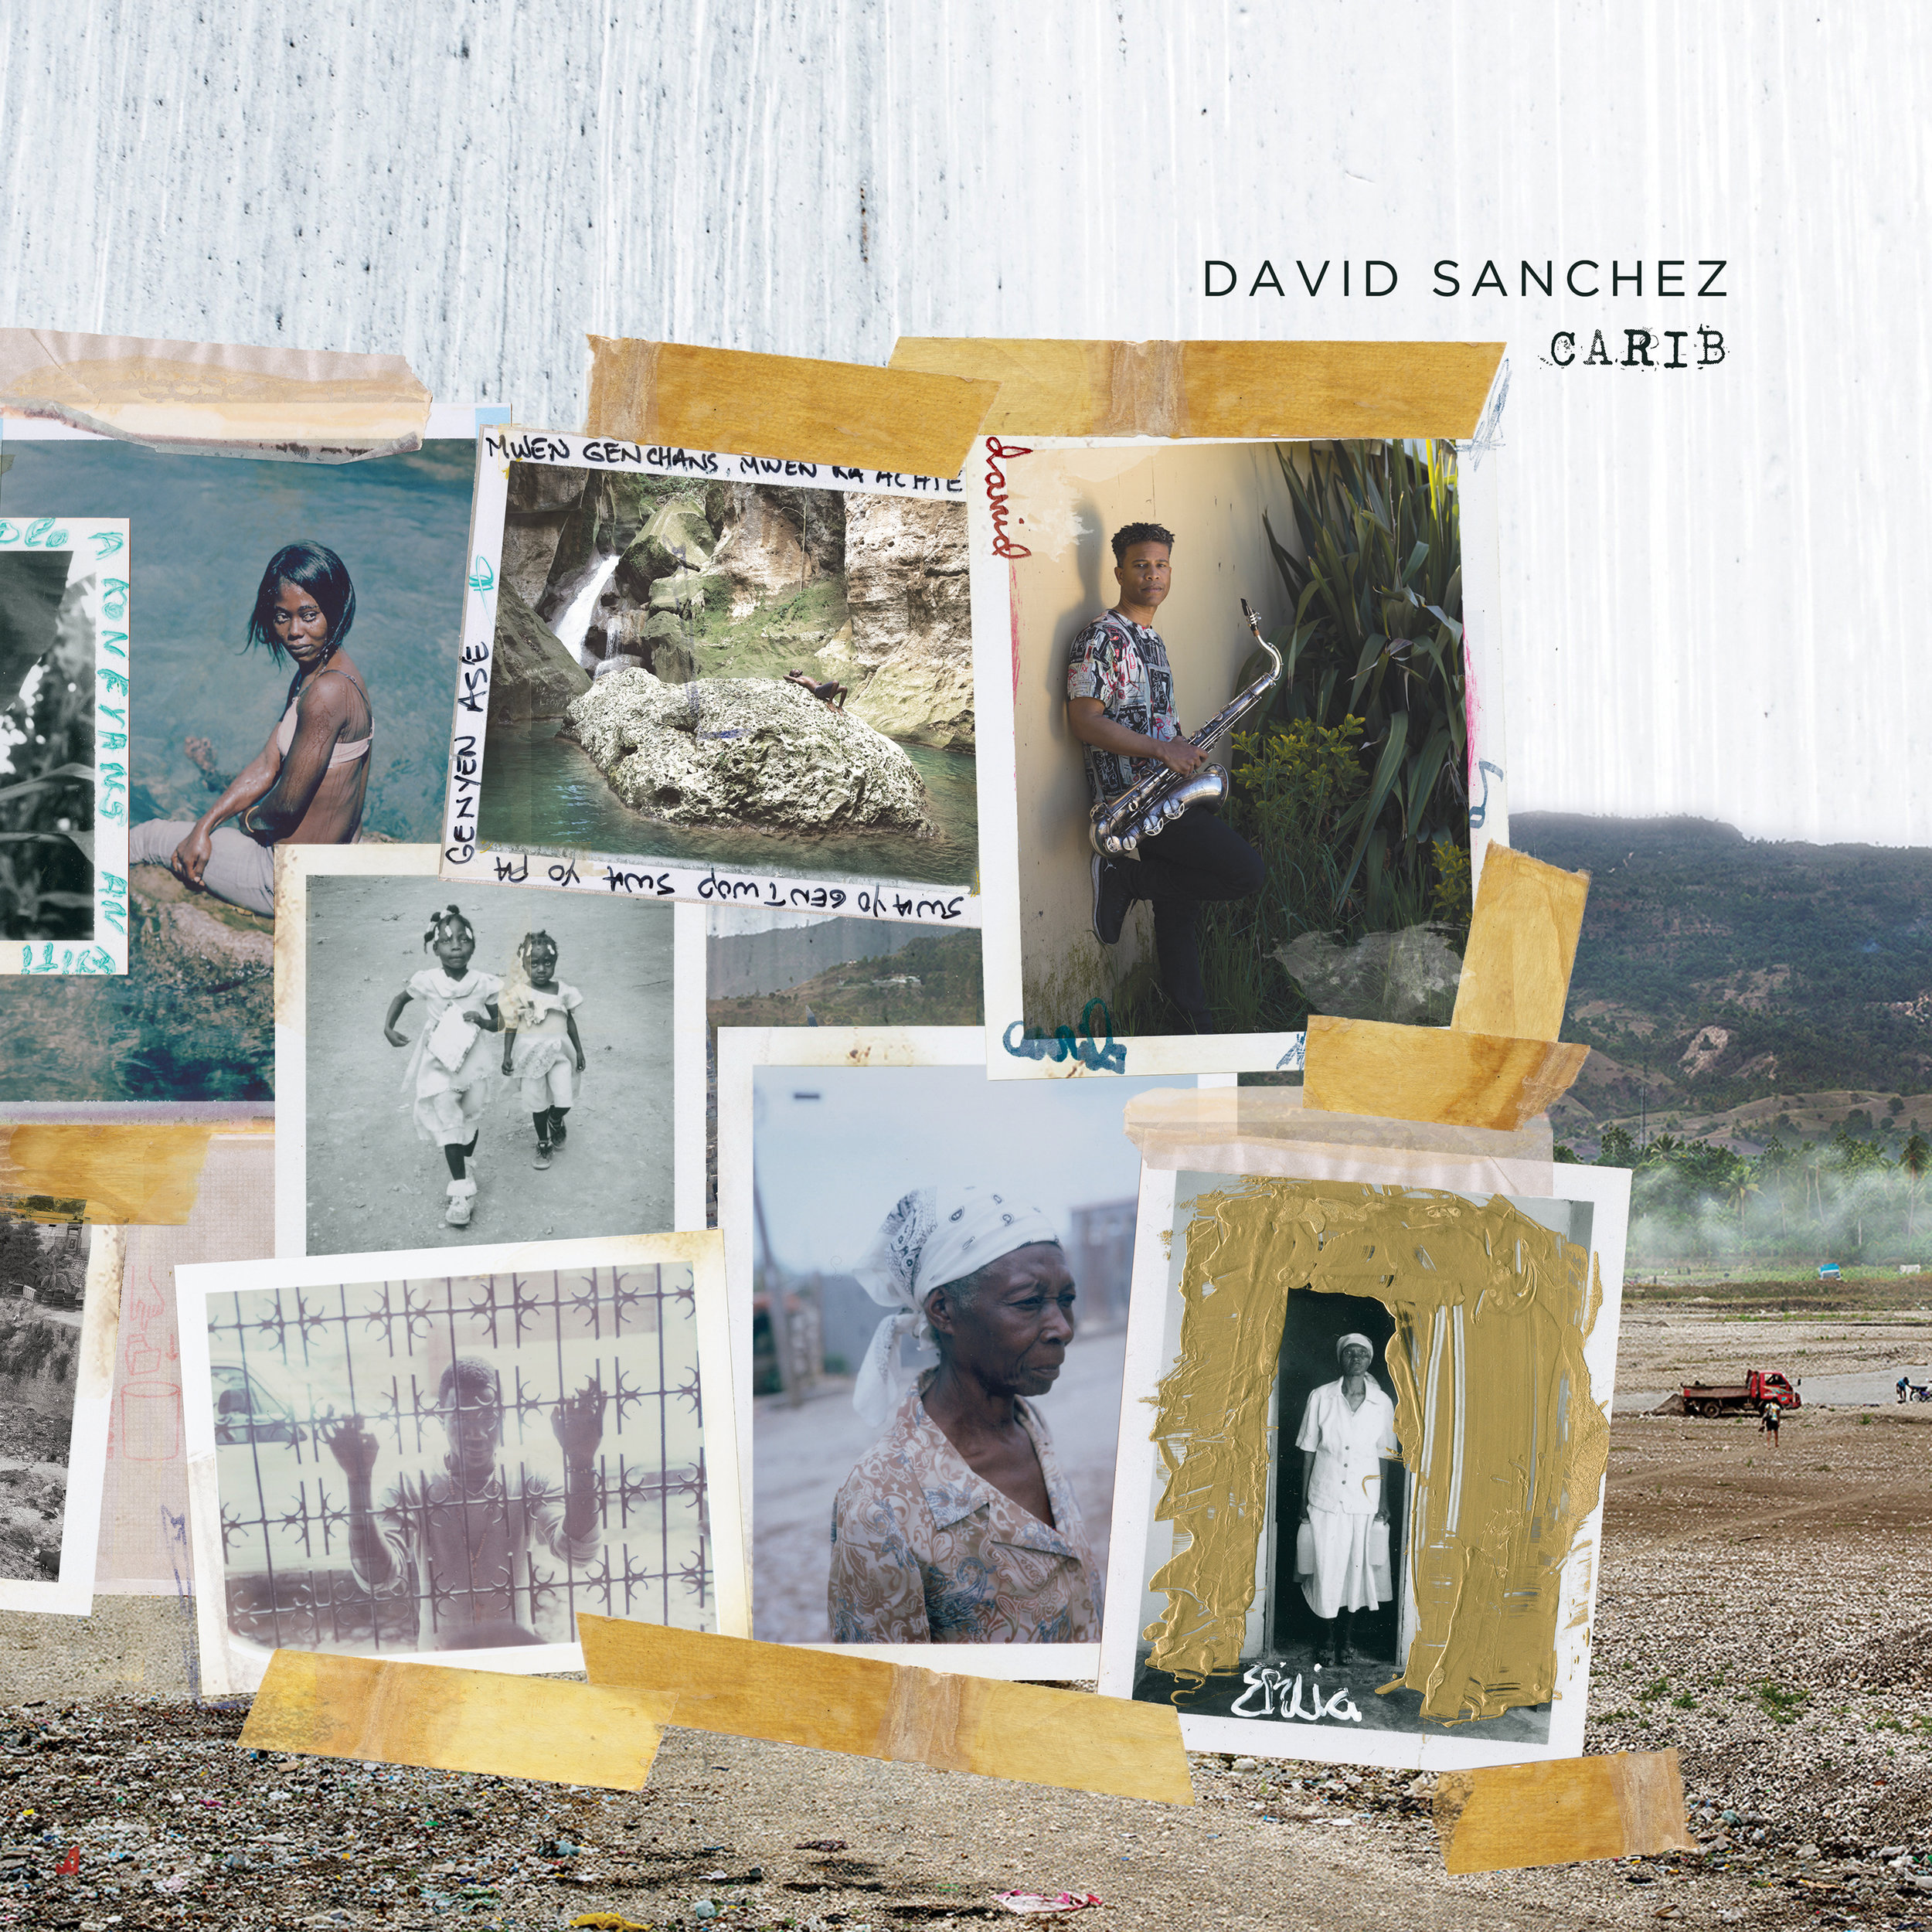 David Sanchez Carib cover art featuring artist Jim Goldberg's photographs.